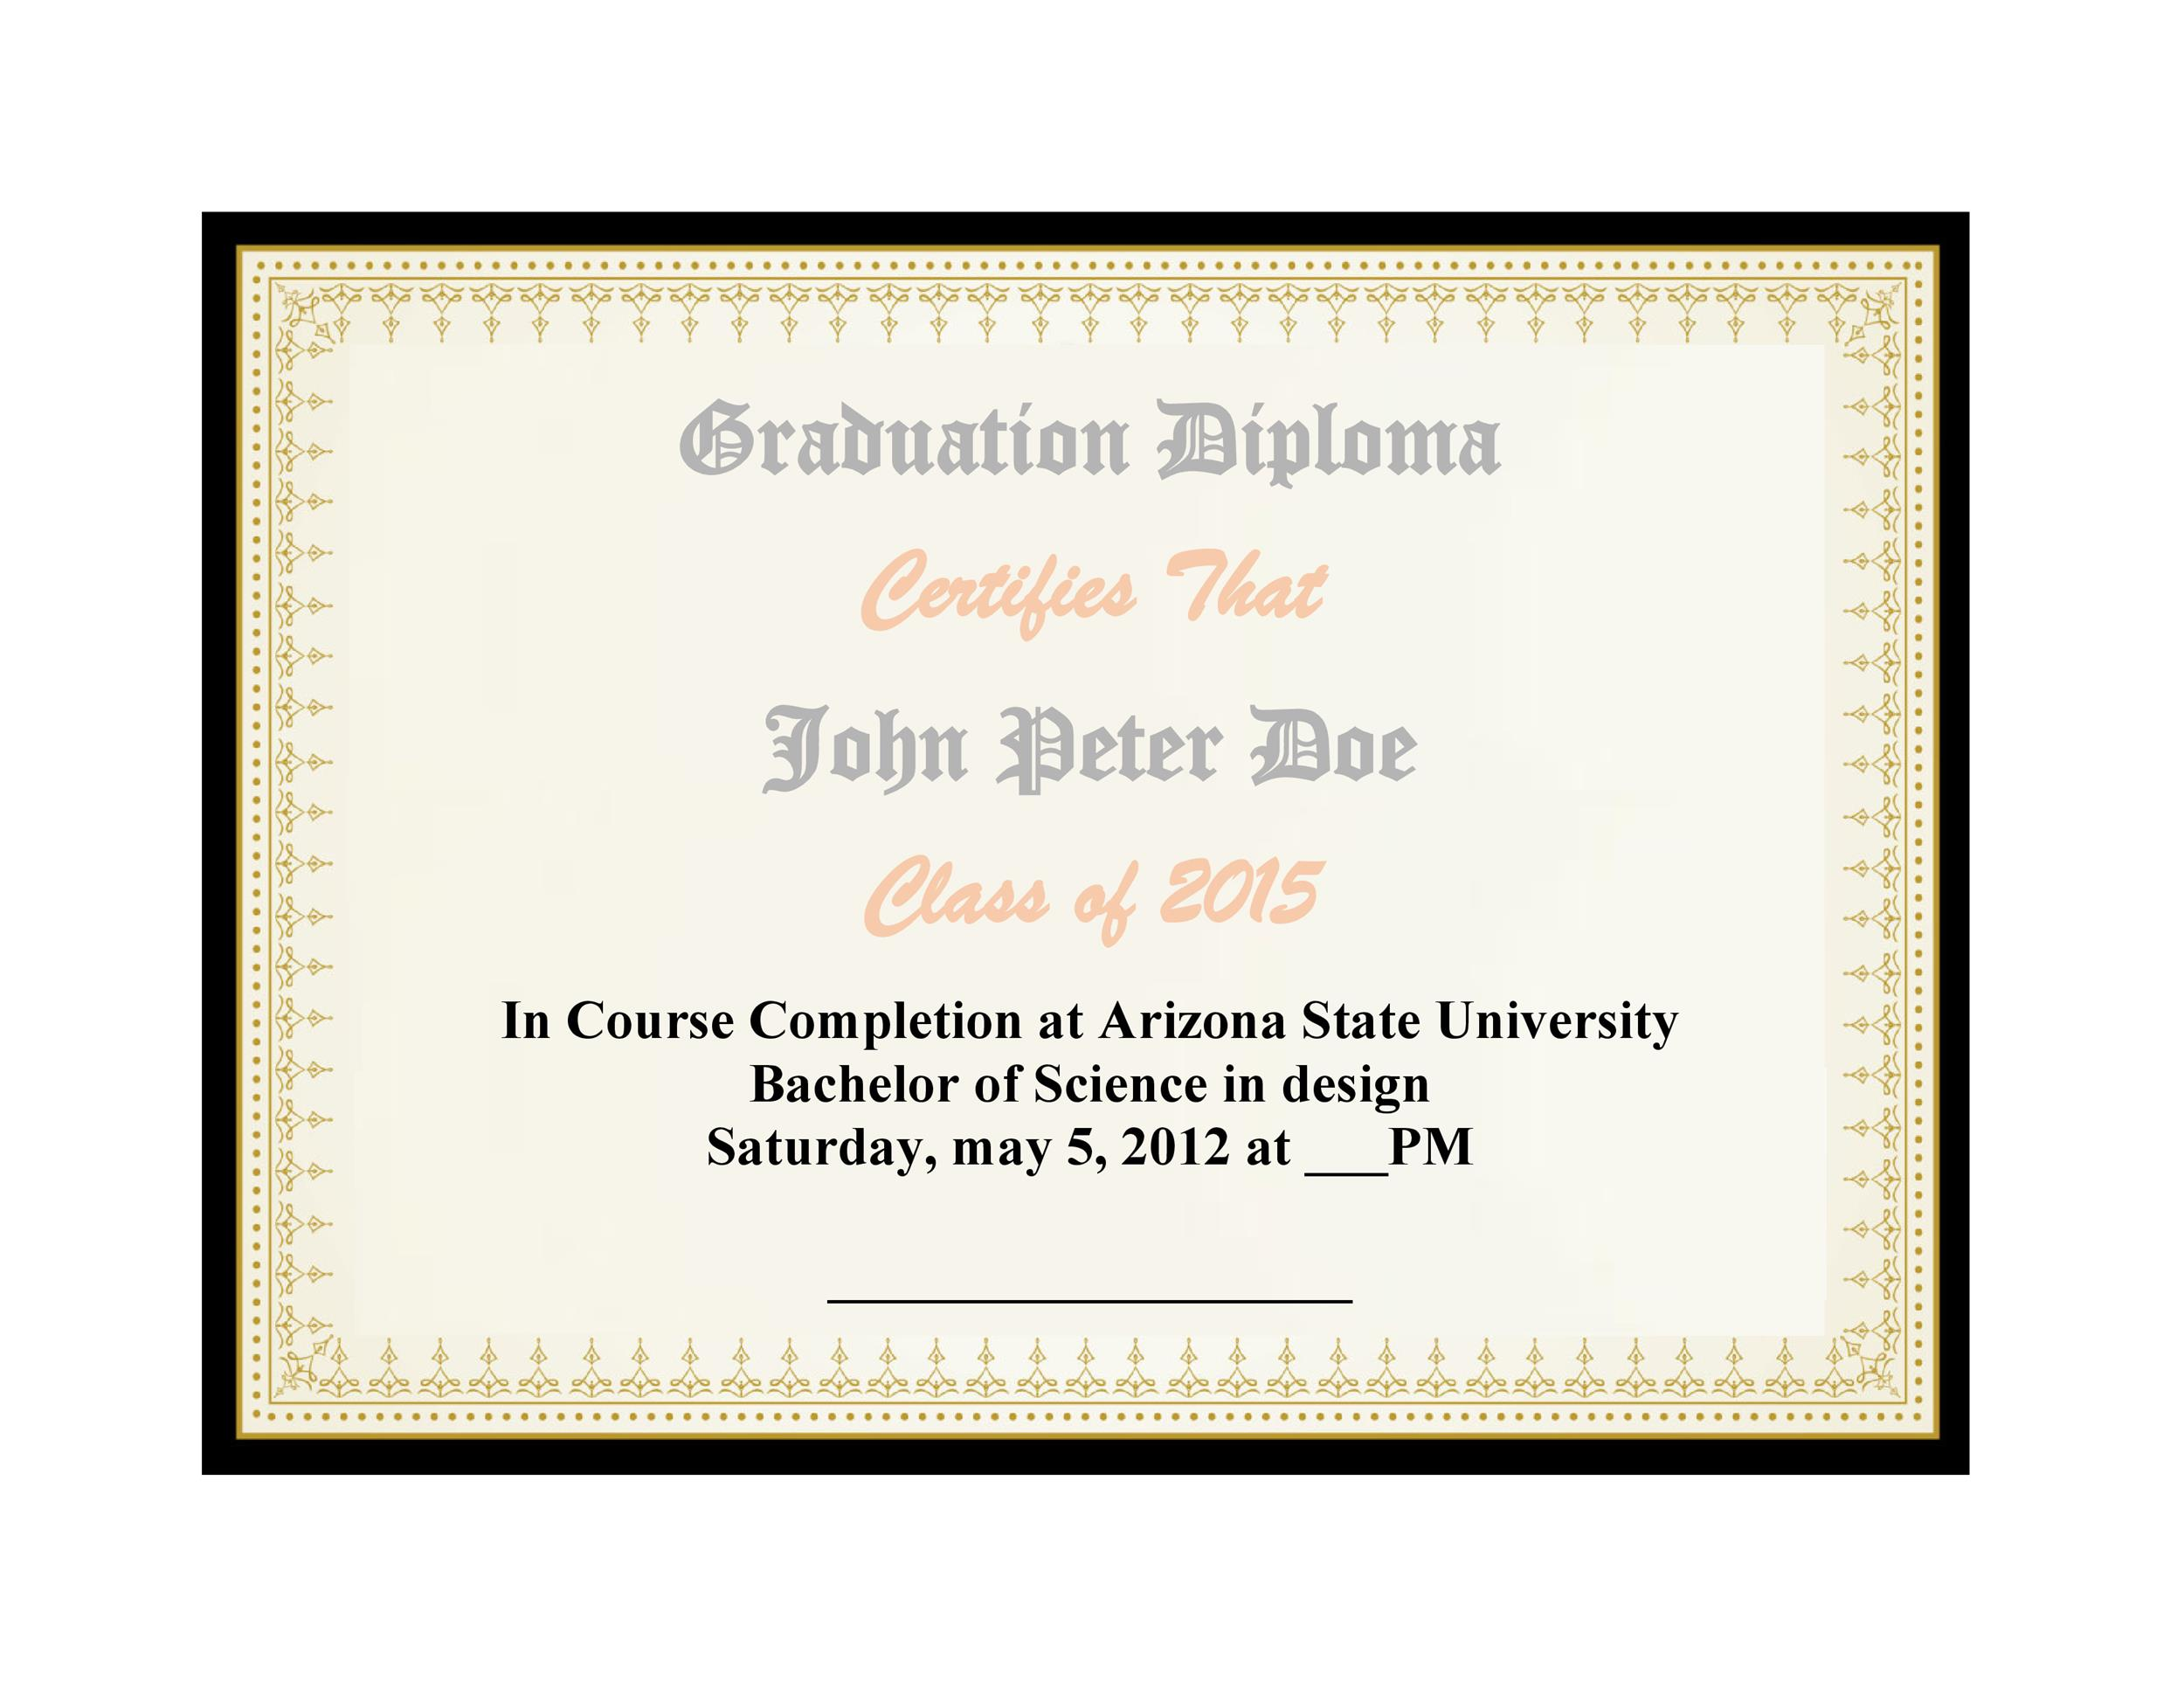 image regarding Free Printable Diploma Template identify 30 Correct Wrong Degree Templates (Significant college or university, Higher education